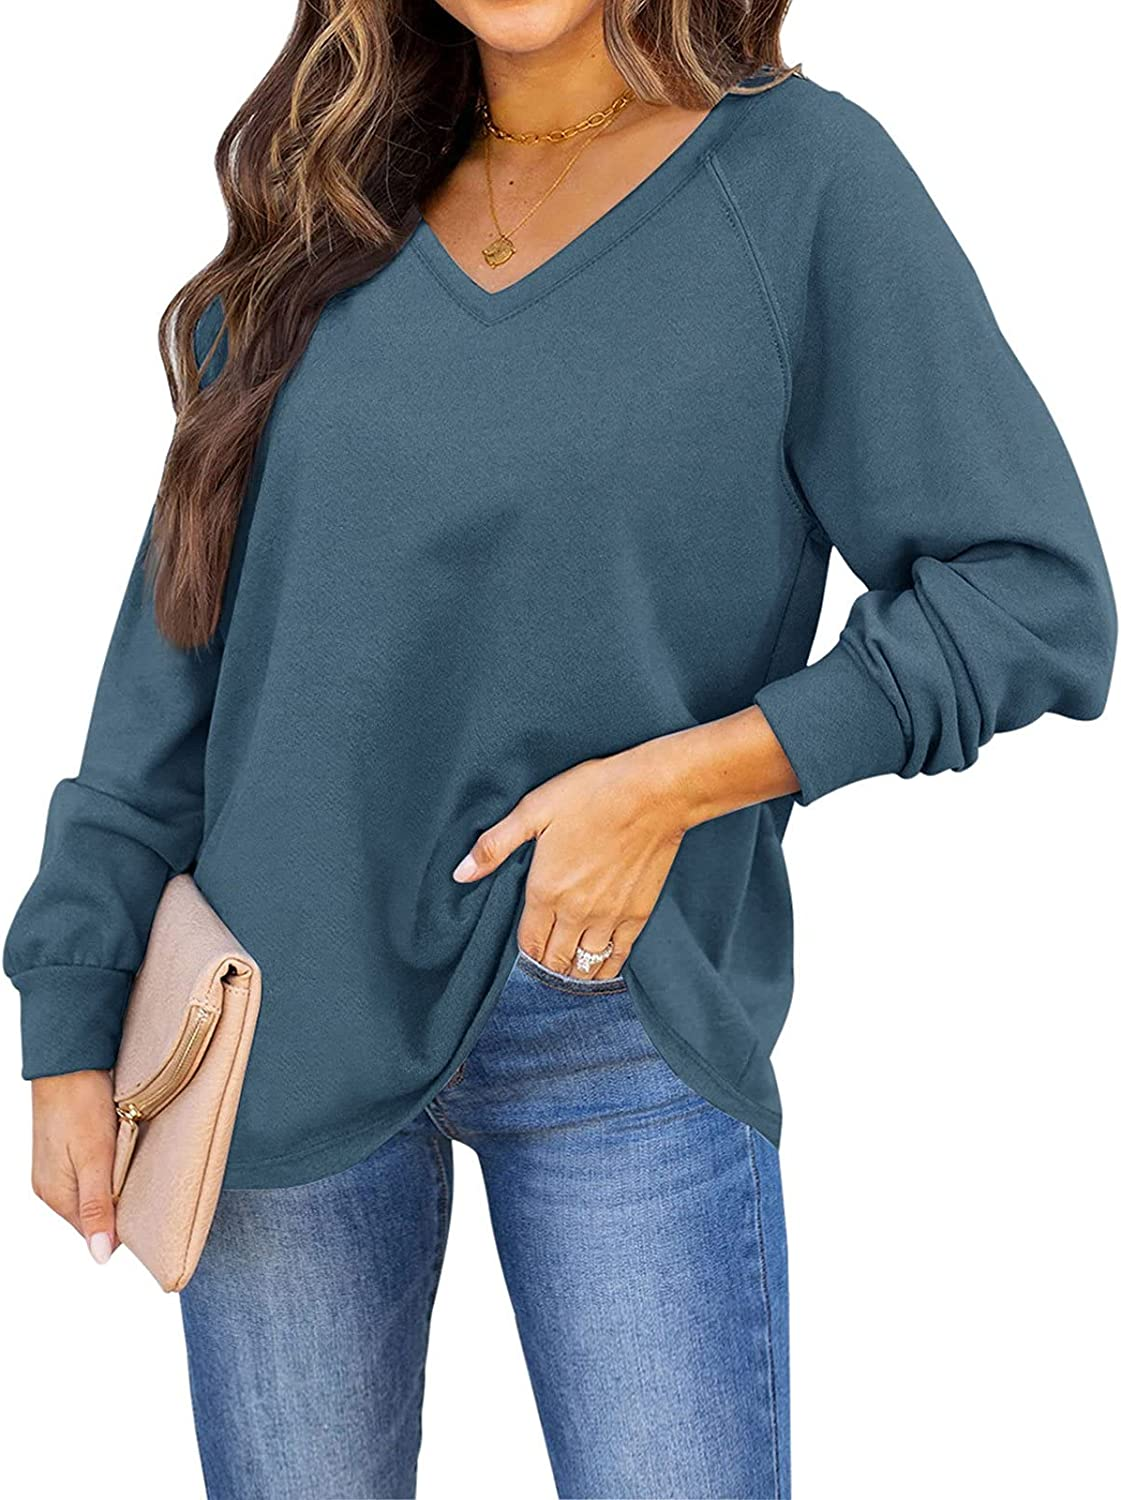 ADREAMLY Women Casual V Neck Sweatshirts Long Sleeve Oversized Pullover Tops Solid Tunic Shirts